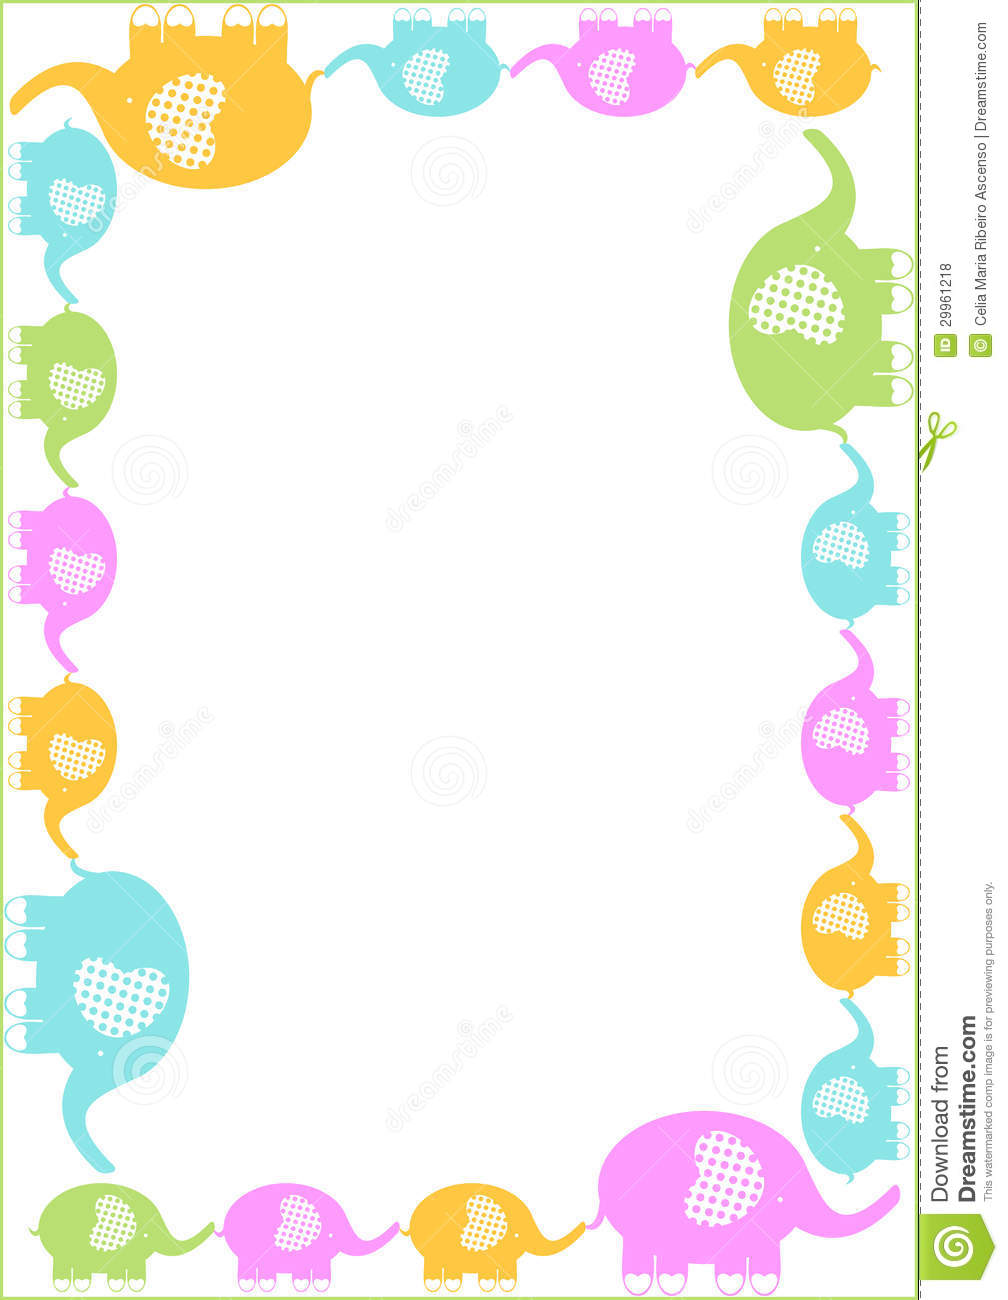 Mother And Elephants Row Frame Border Royalty Free Stock ...